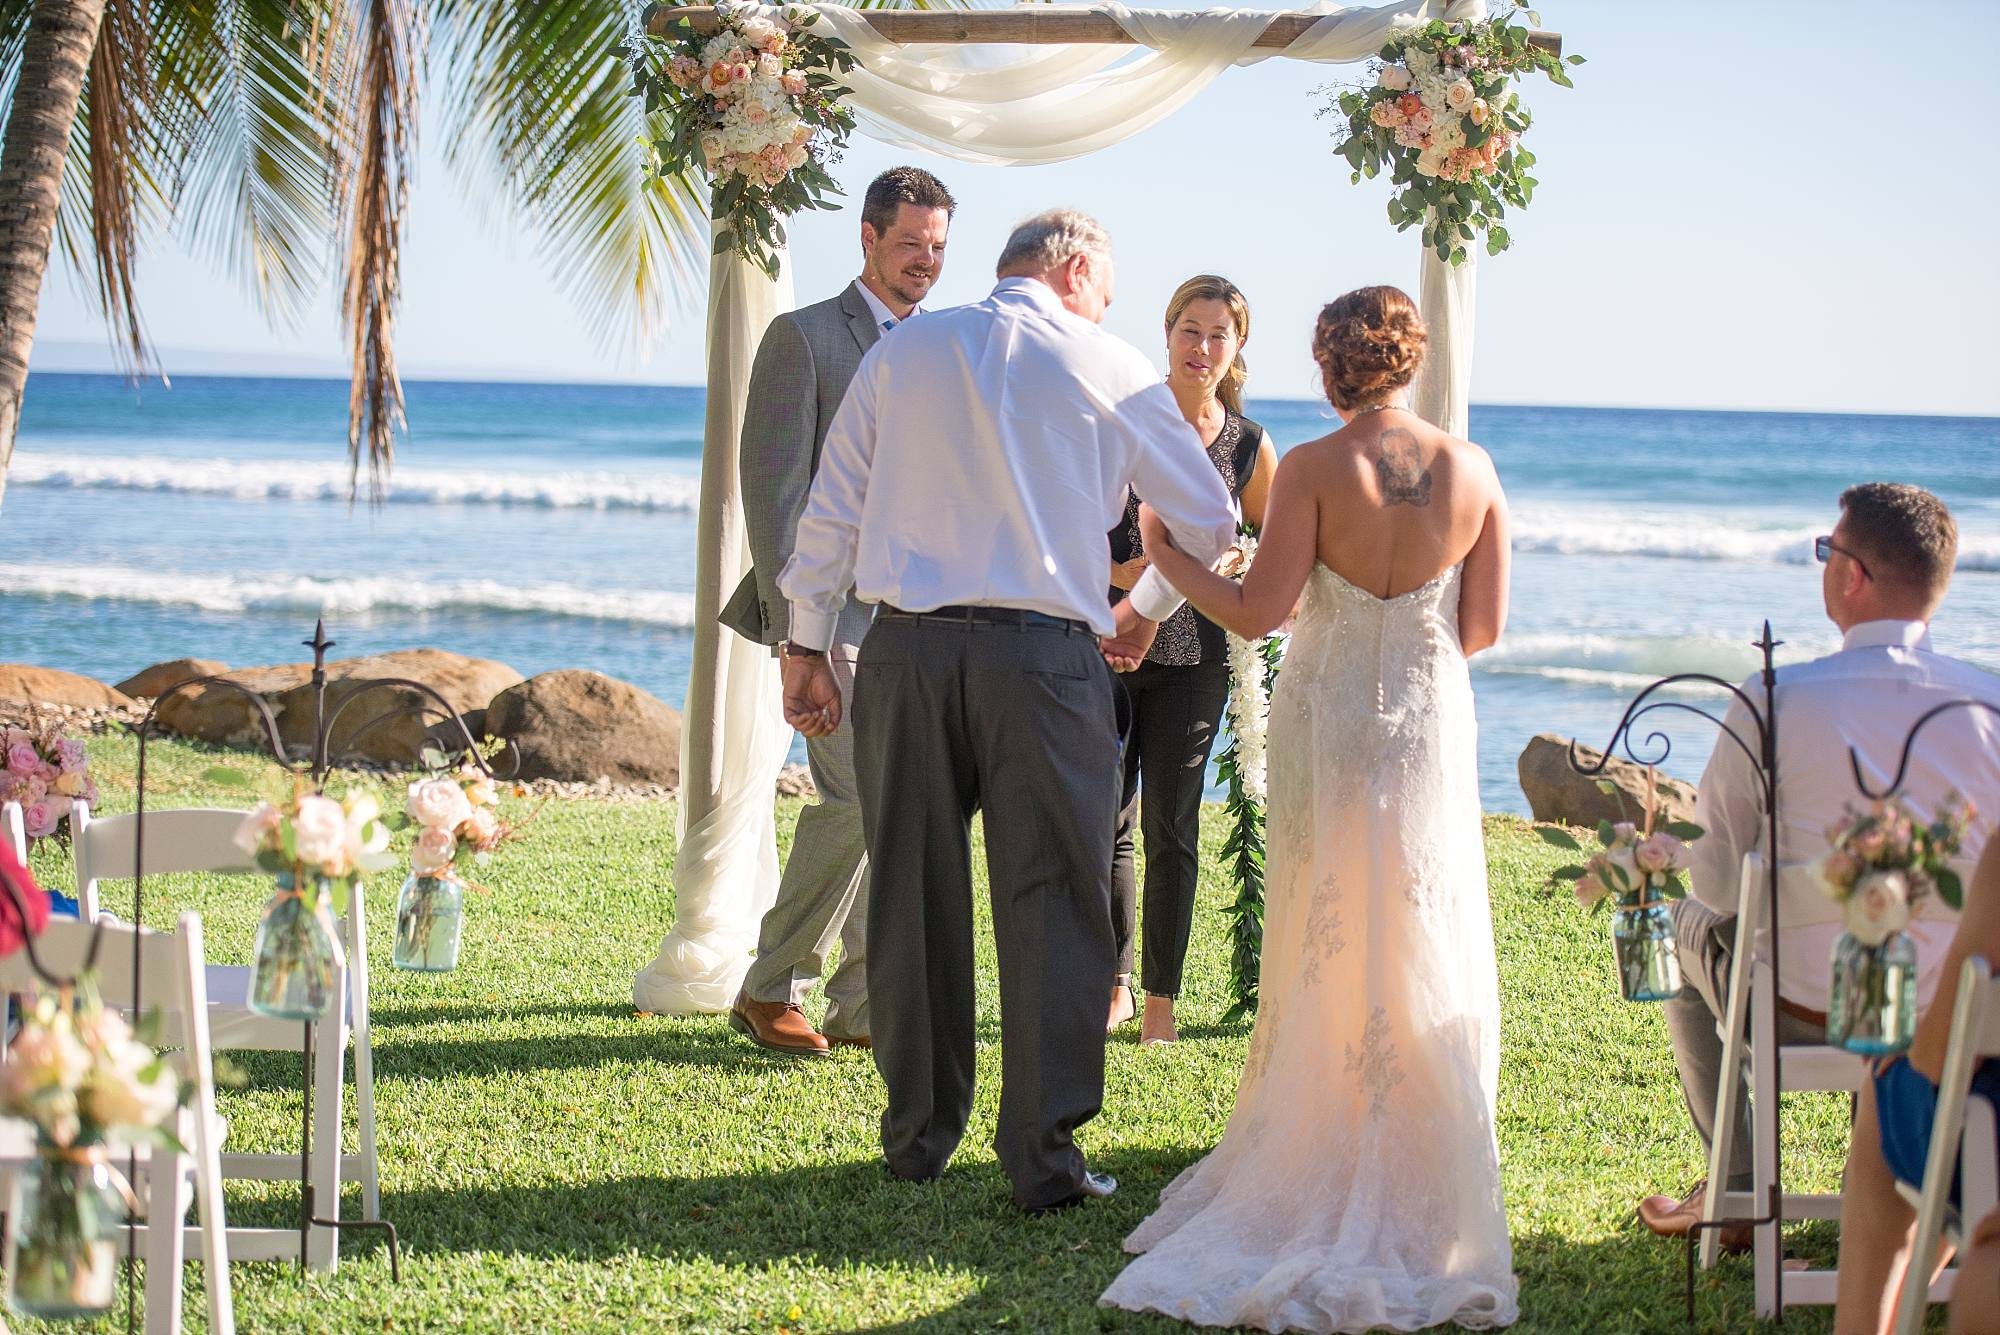 father escorting daughter to her groom